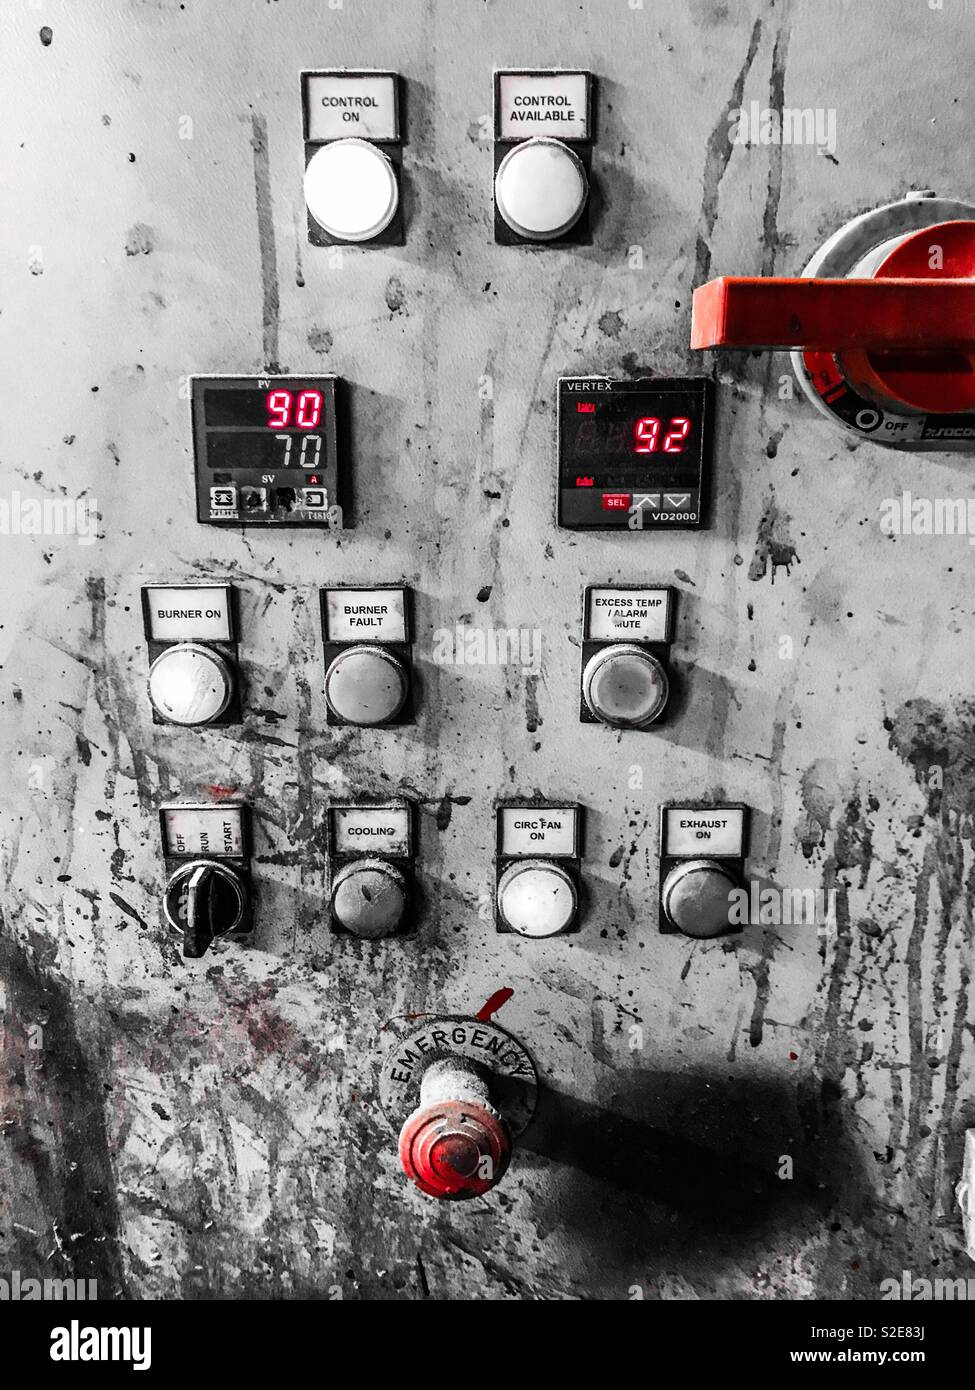 Industrial oven control panel showing temperature settings with selective colour - Stock Image